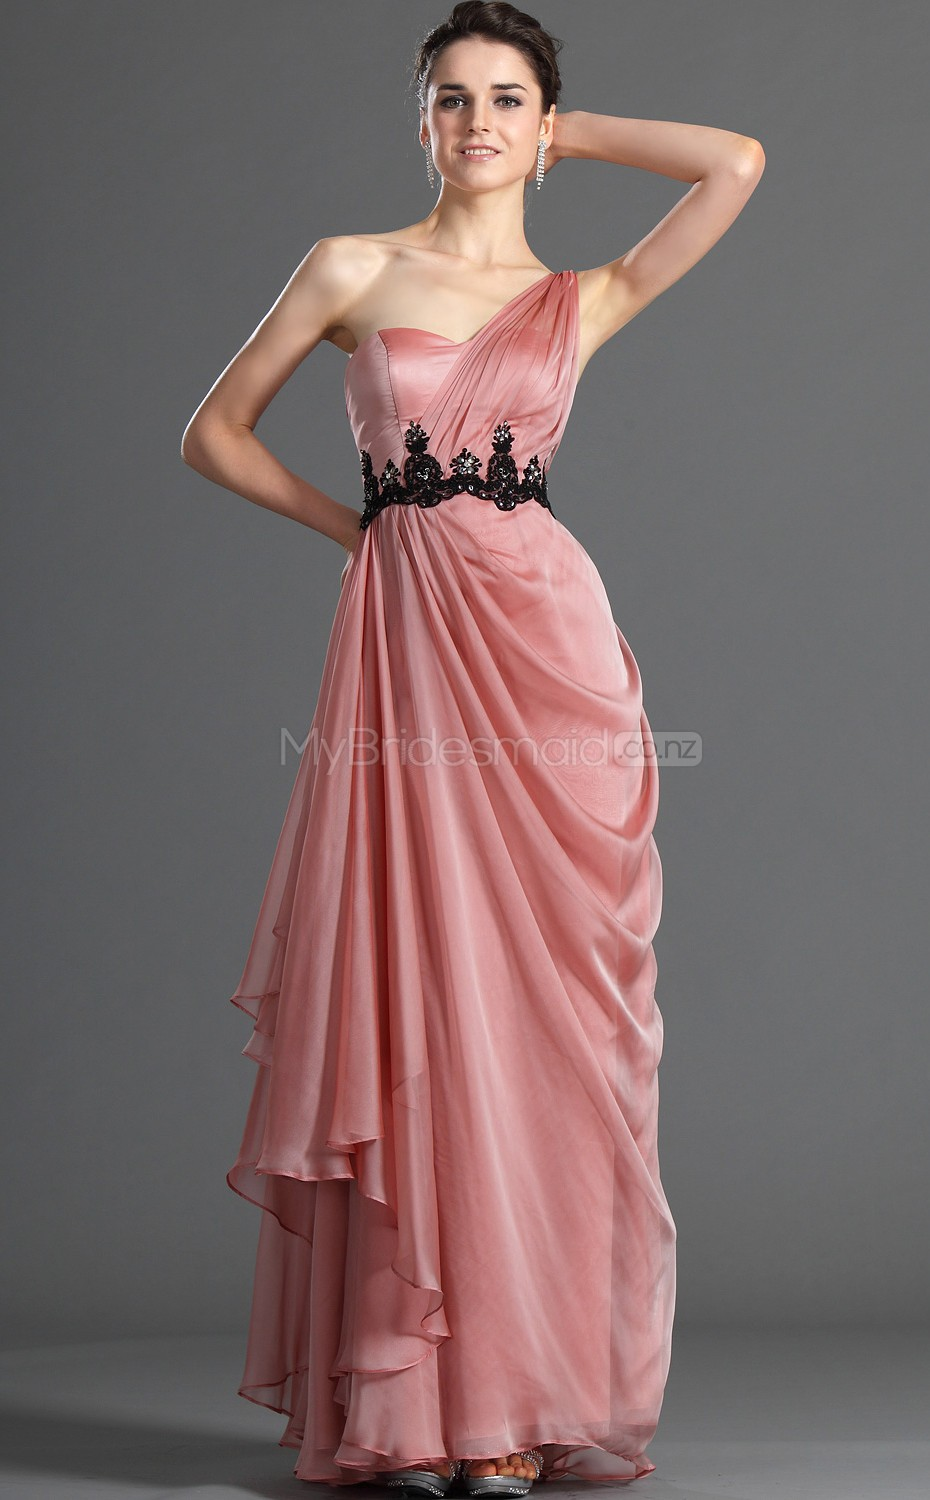 Candy Pink Satin Chiffon A-line One Shoulder Long Bridesmaid Dresses ...